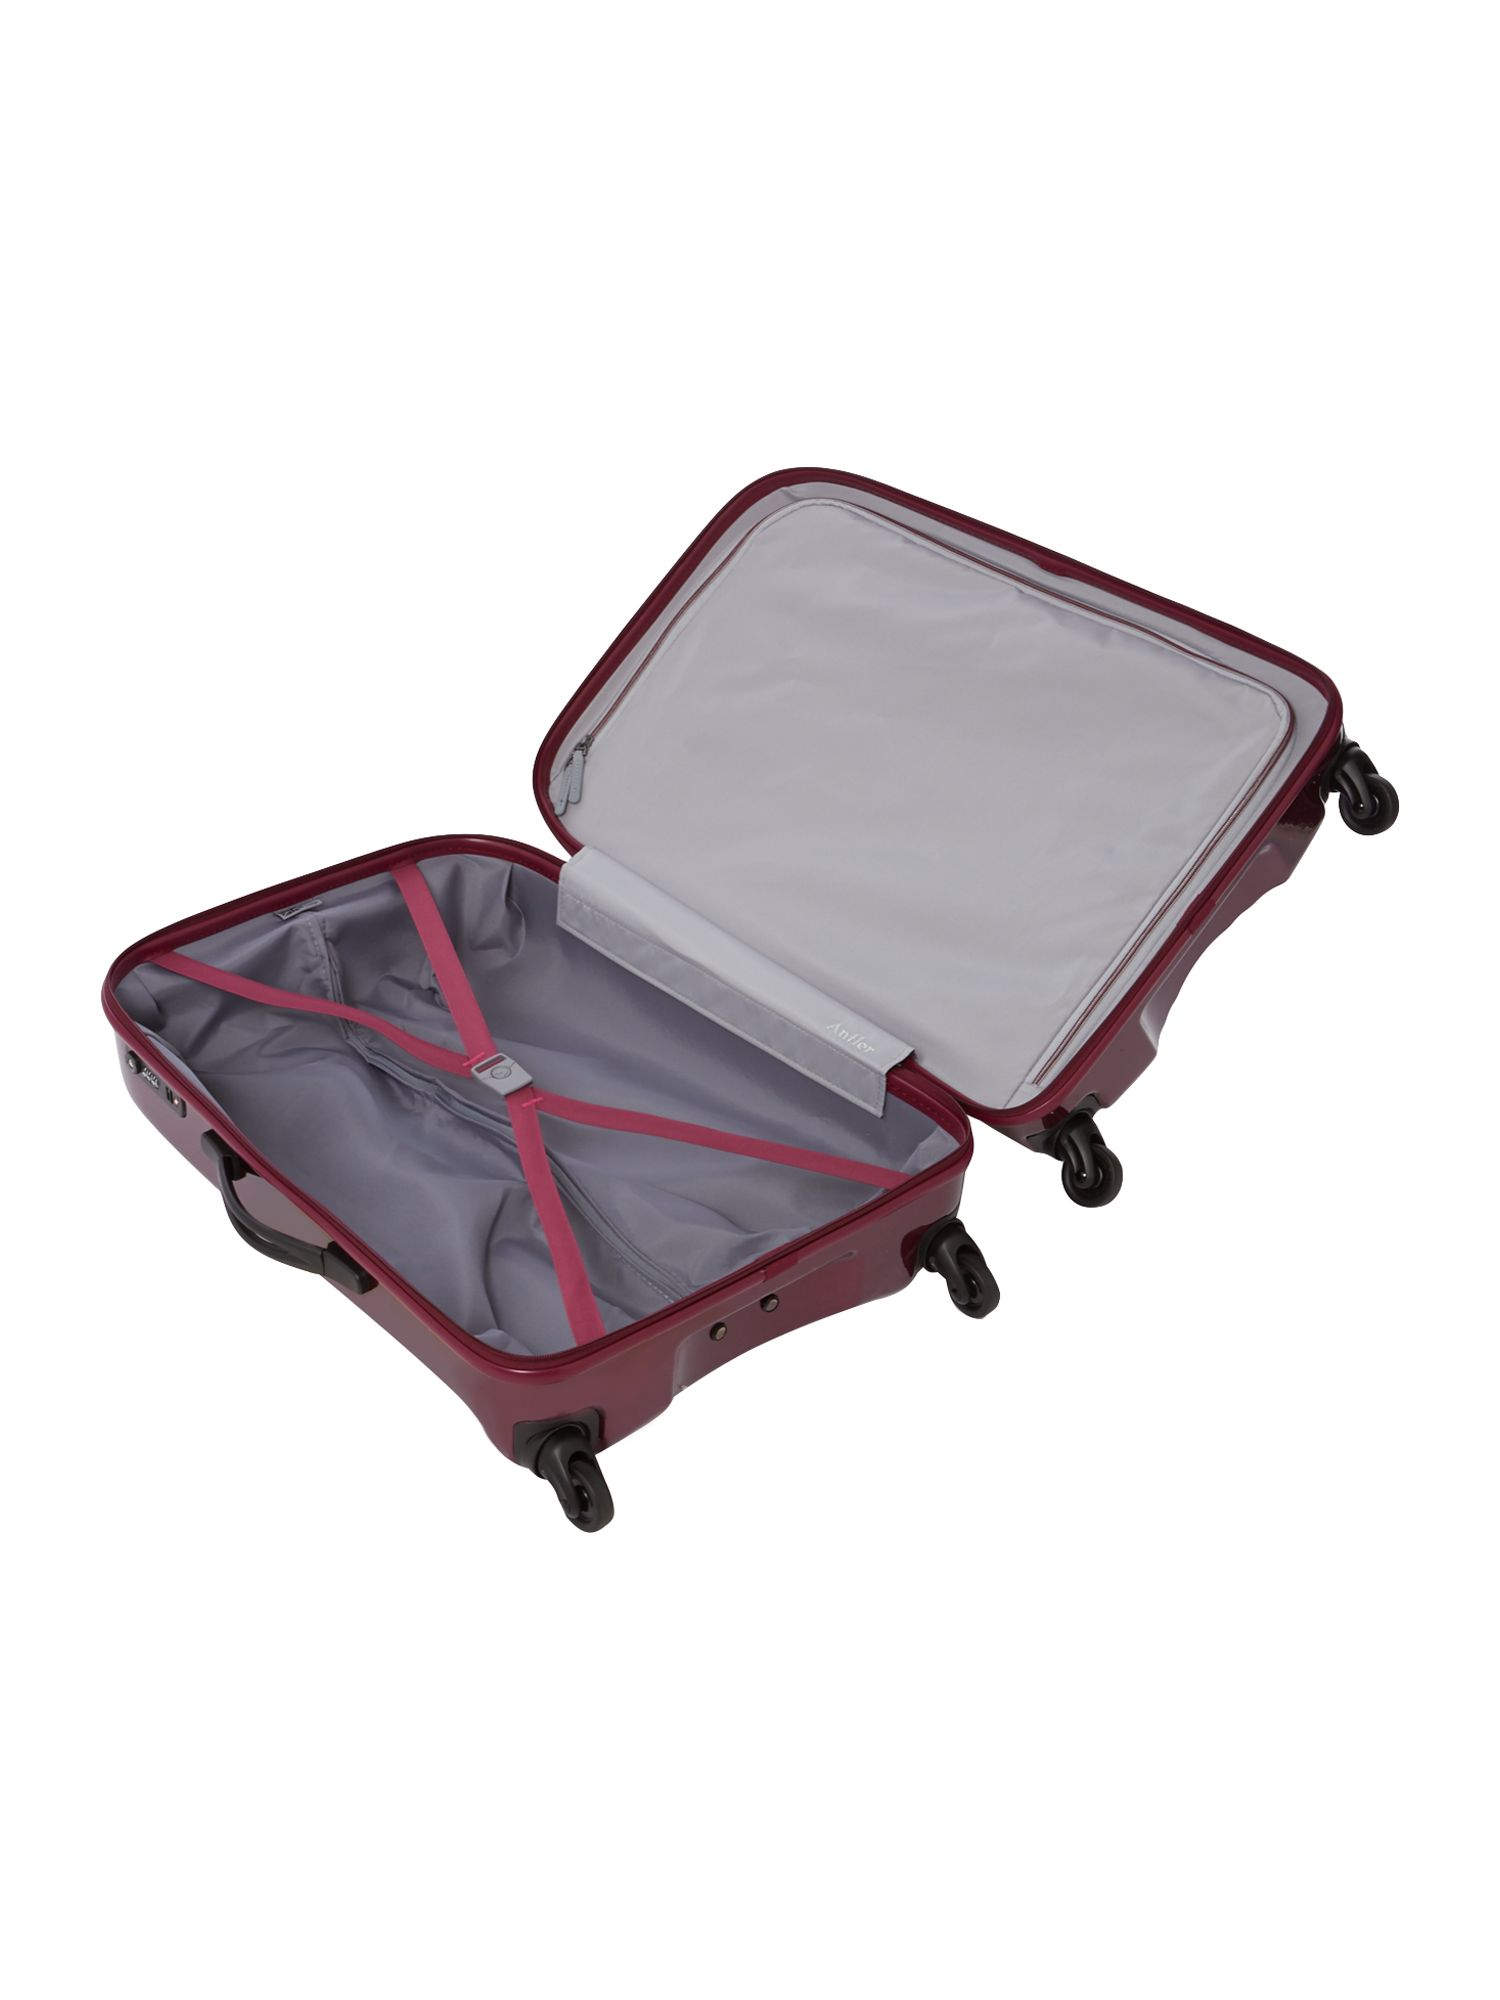 Tiber plum 4 wheel soft medium rollercase